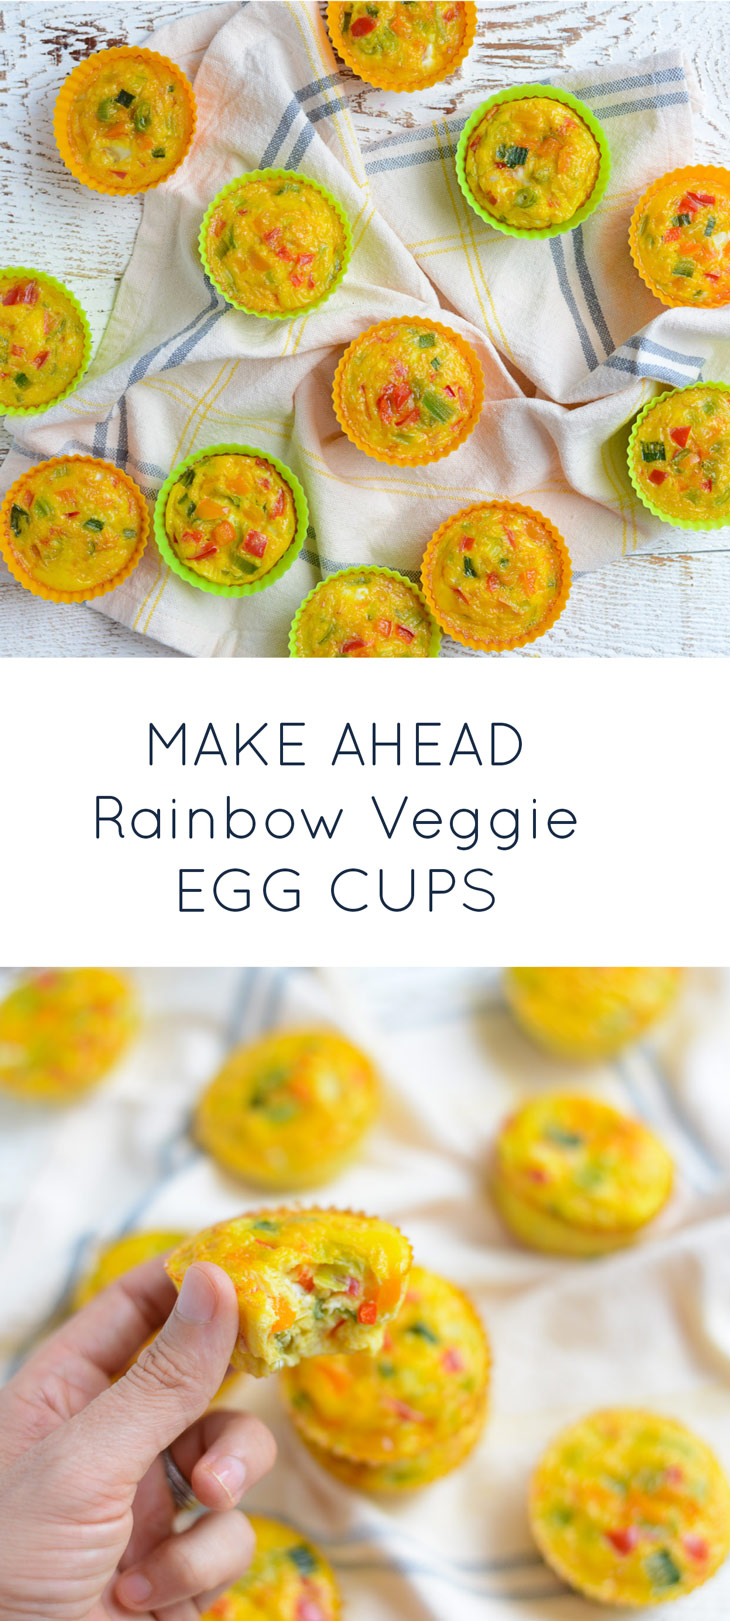 Make Ahead Rainbow Veggie Egg Cups. Naturally gluten-free, dairy-free and kid-friendly!